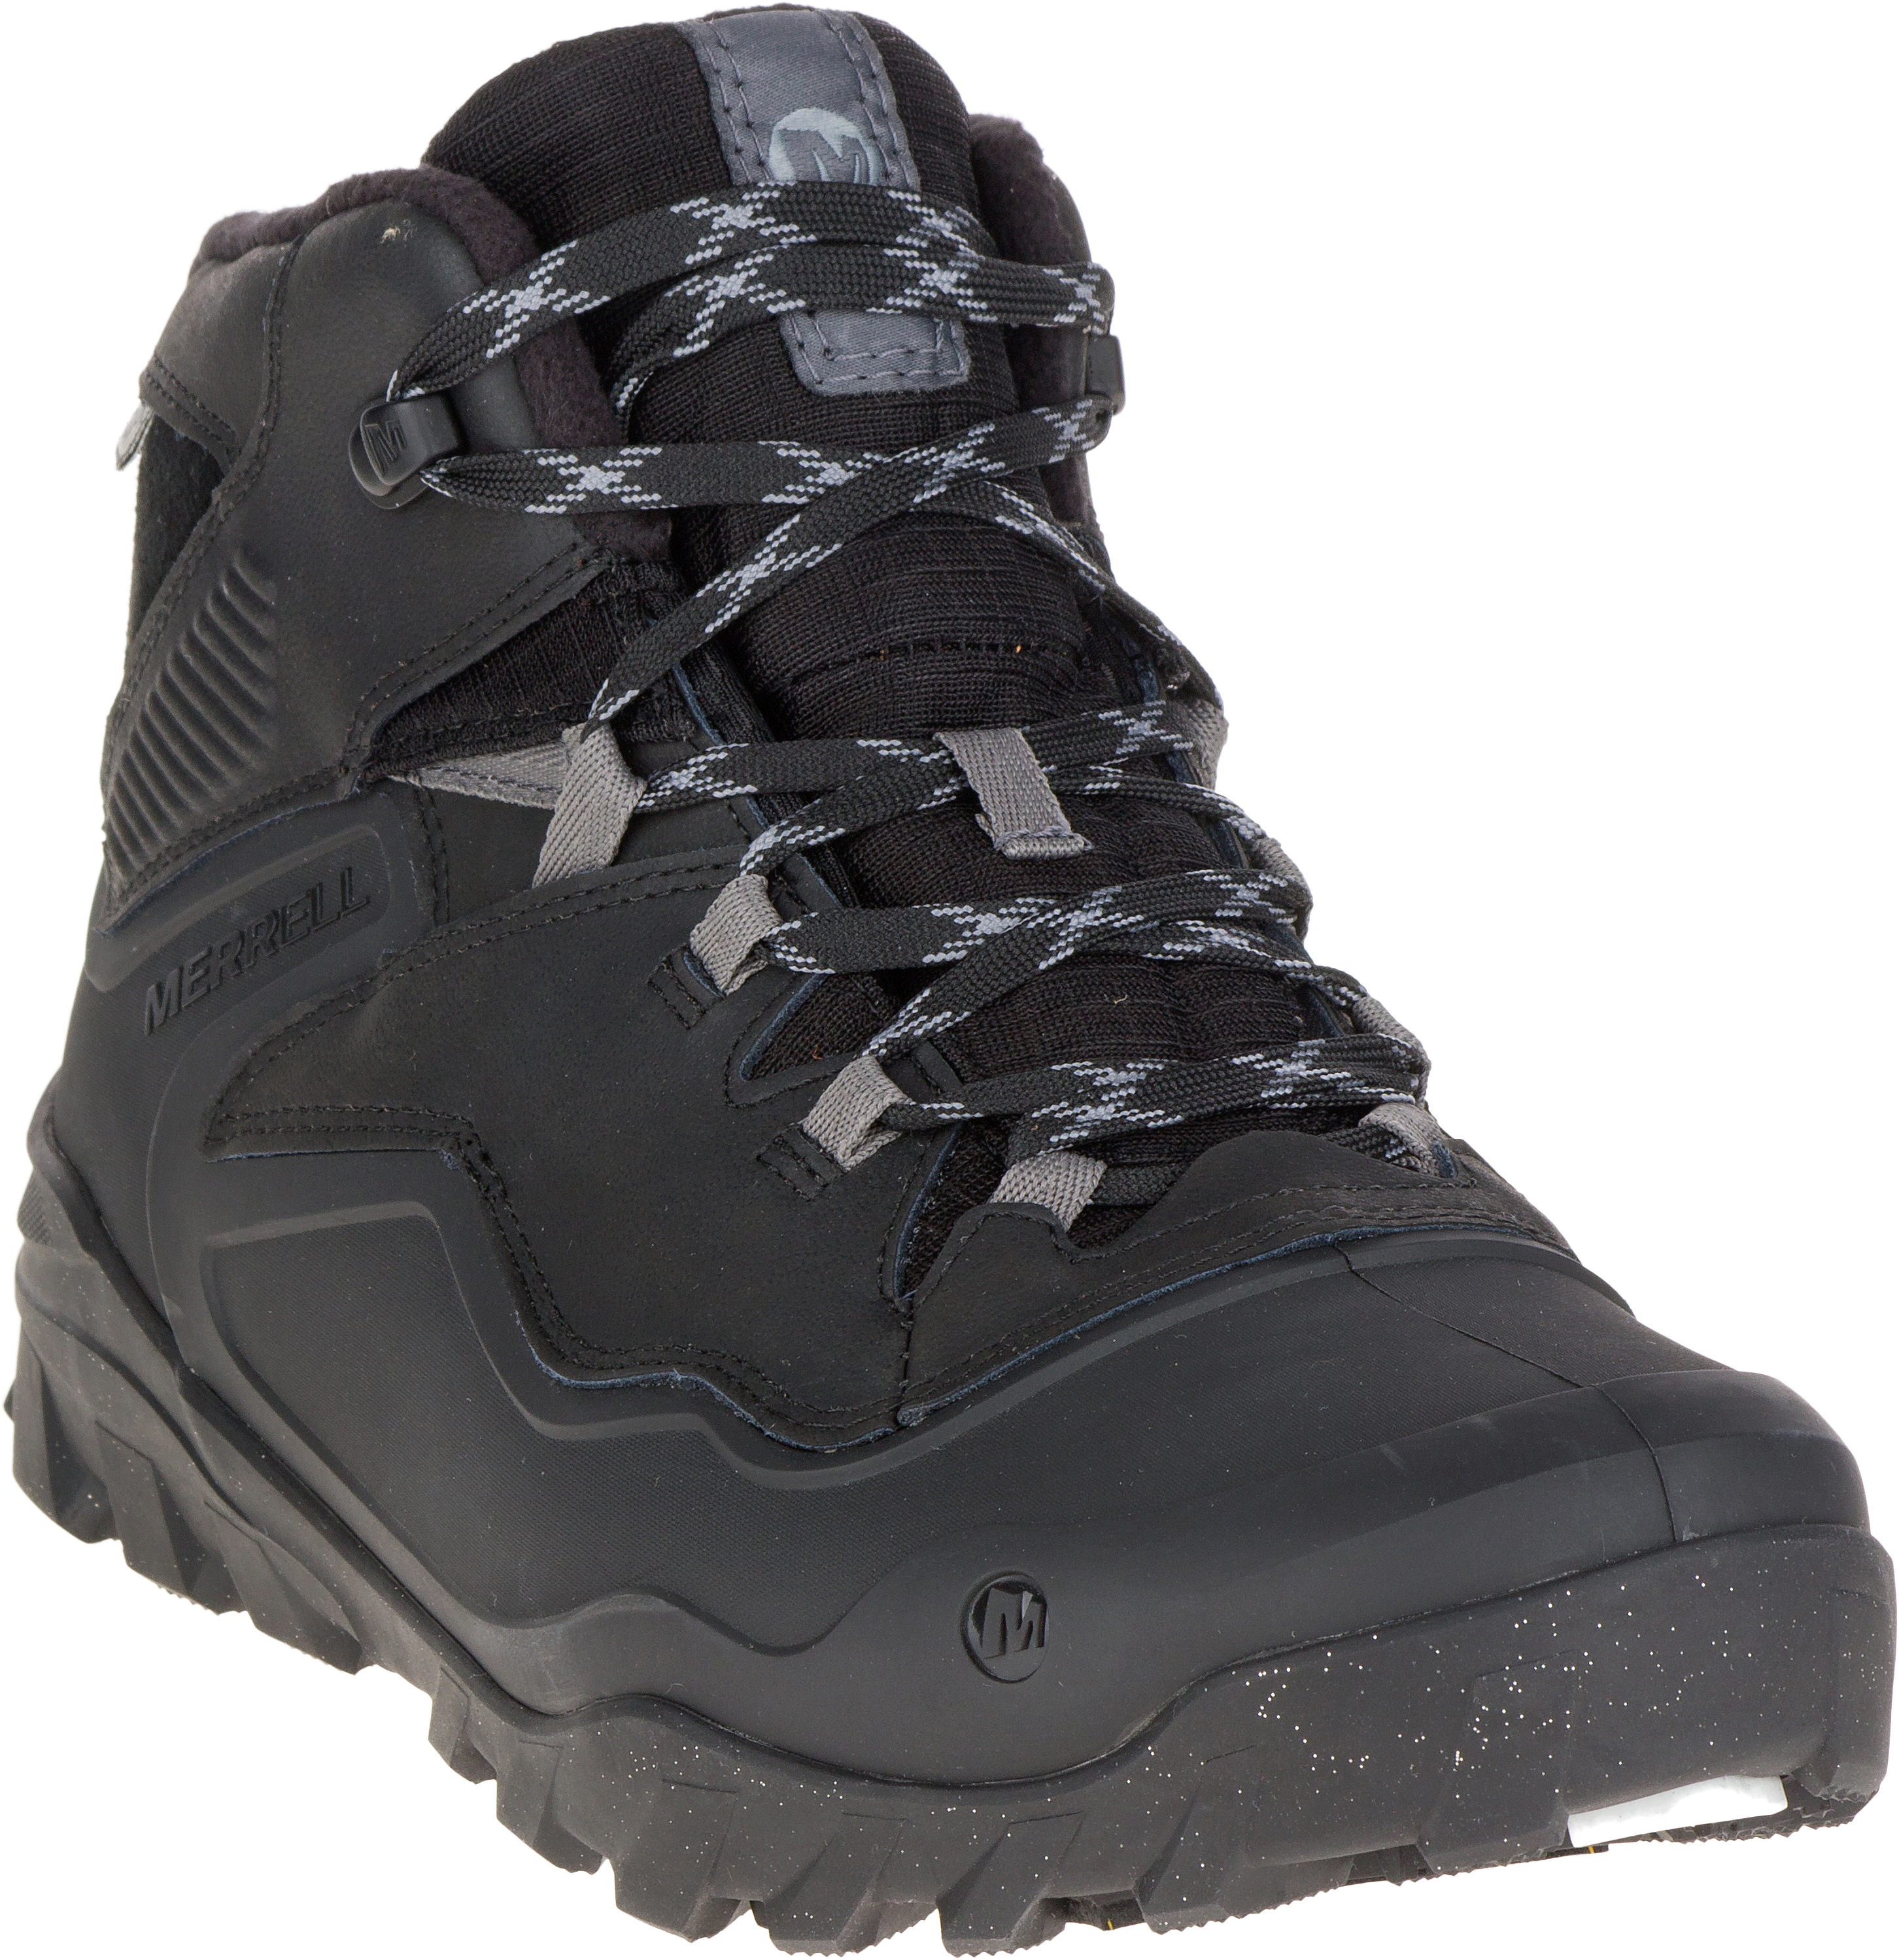 huge range of quality super cheap compares to Merrell Overlook 6 Ice+ Arctic Grip Waterproof Winter Boots ...